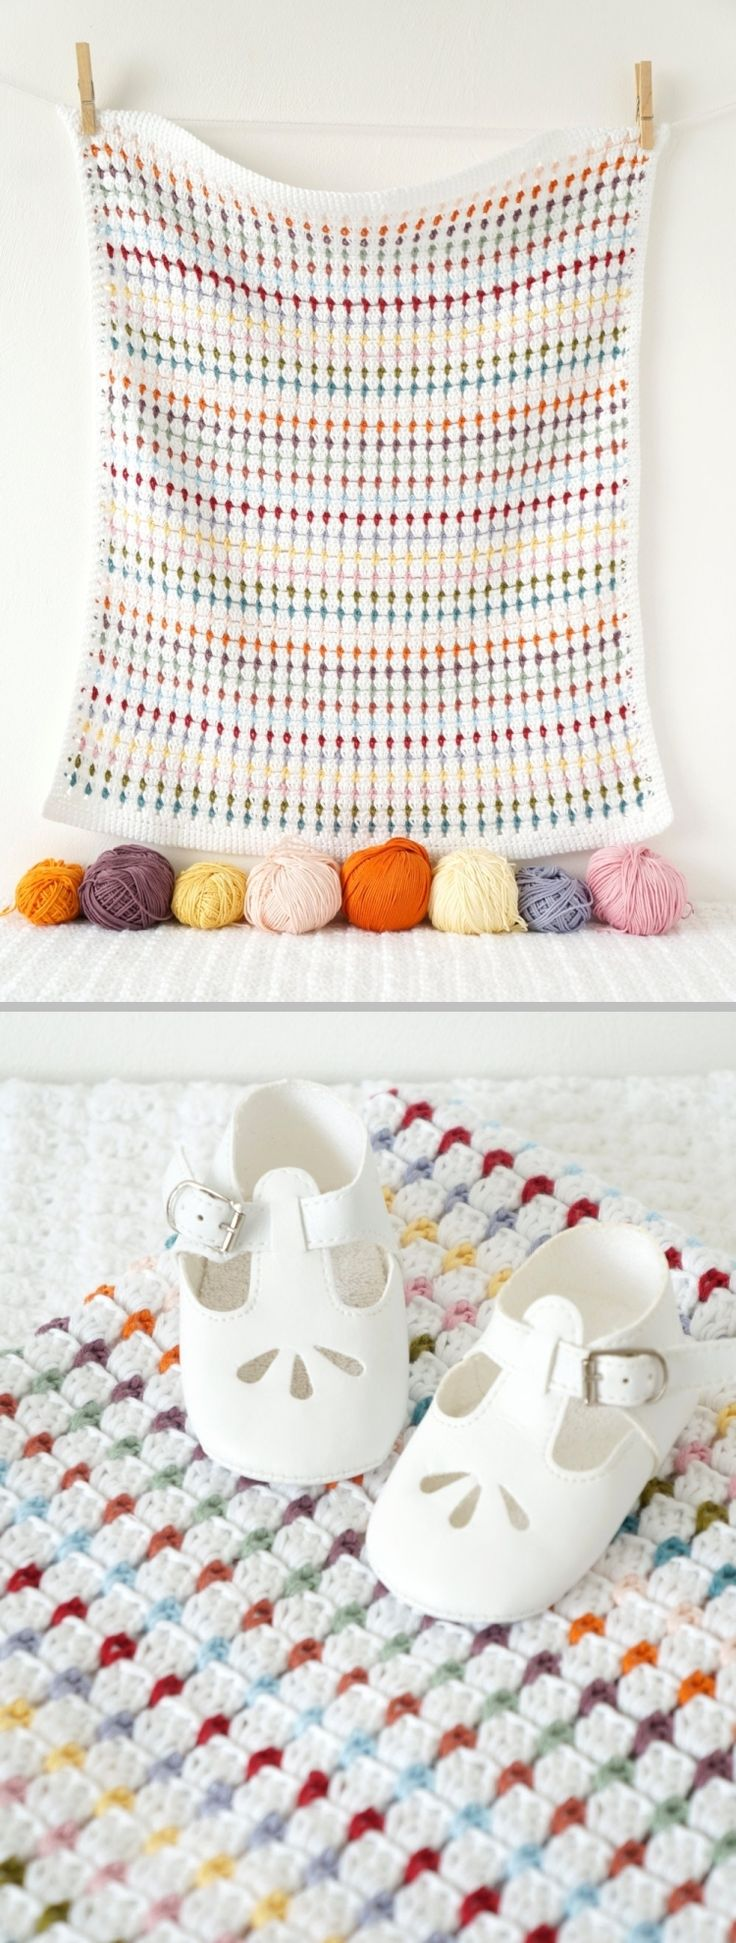 Simple block stitch baby blanket ~ Main color white (DC cluster rows) with 12 accent colors (SC rows); border worked in SC. . . . . ღTrish W ~ http://www.pinterest.com/trishw/ . . . . #crochet #afghan #throw